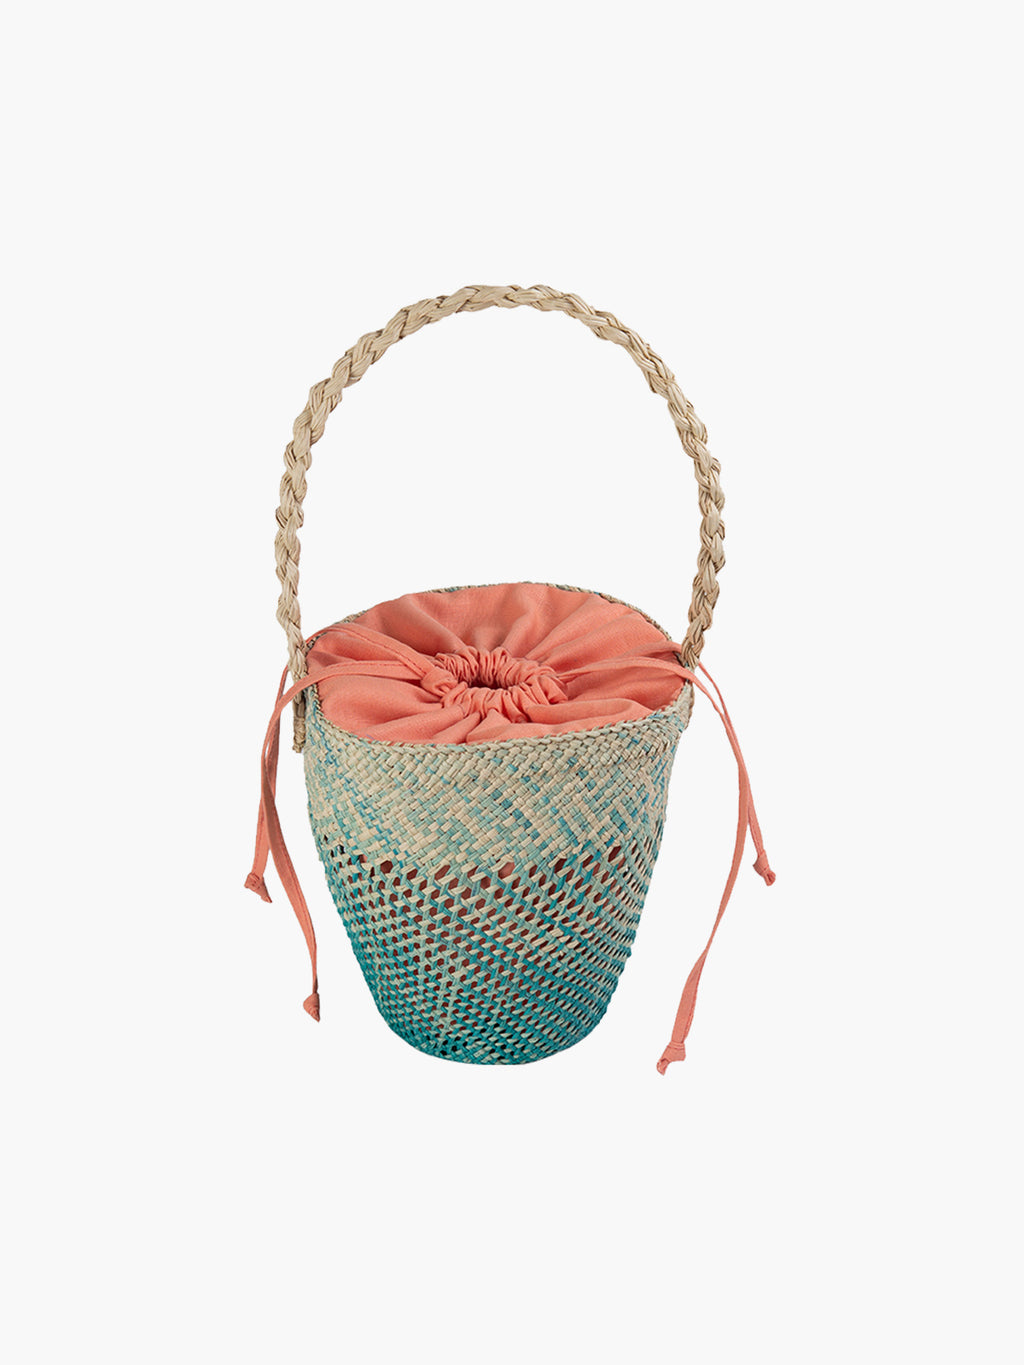 Basket Bag | Teal